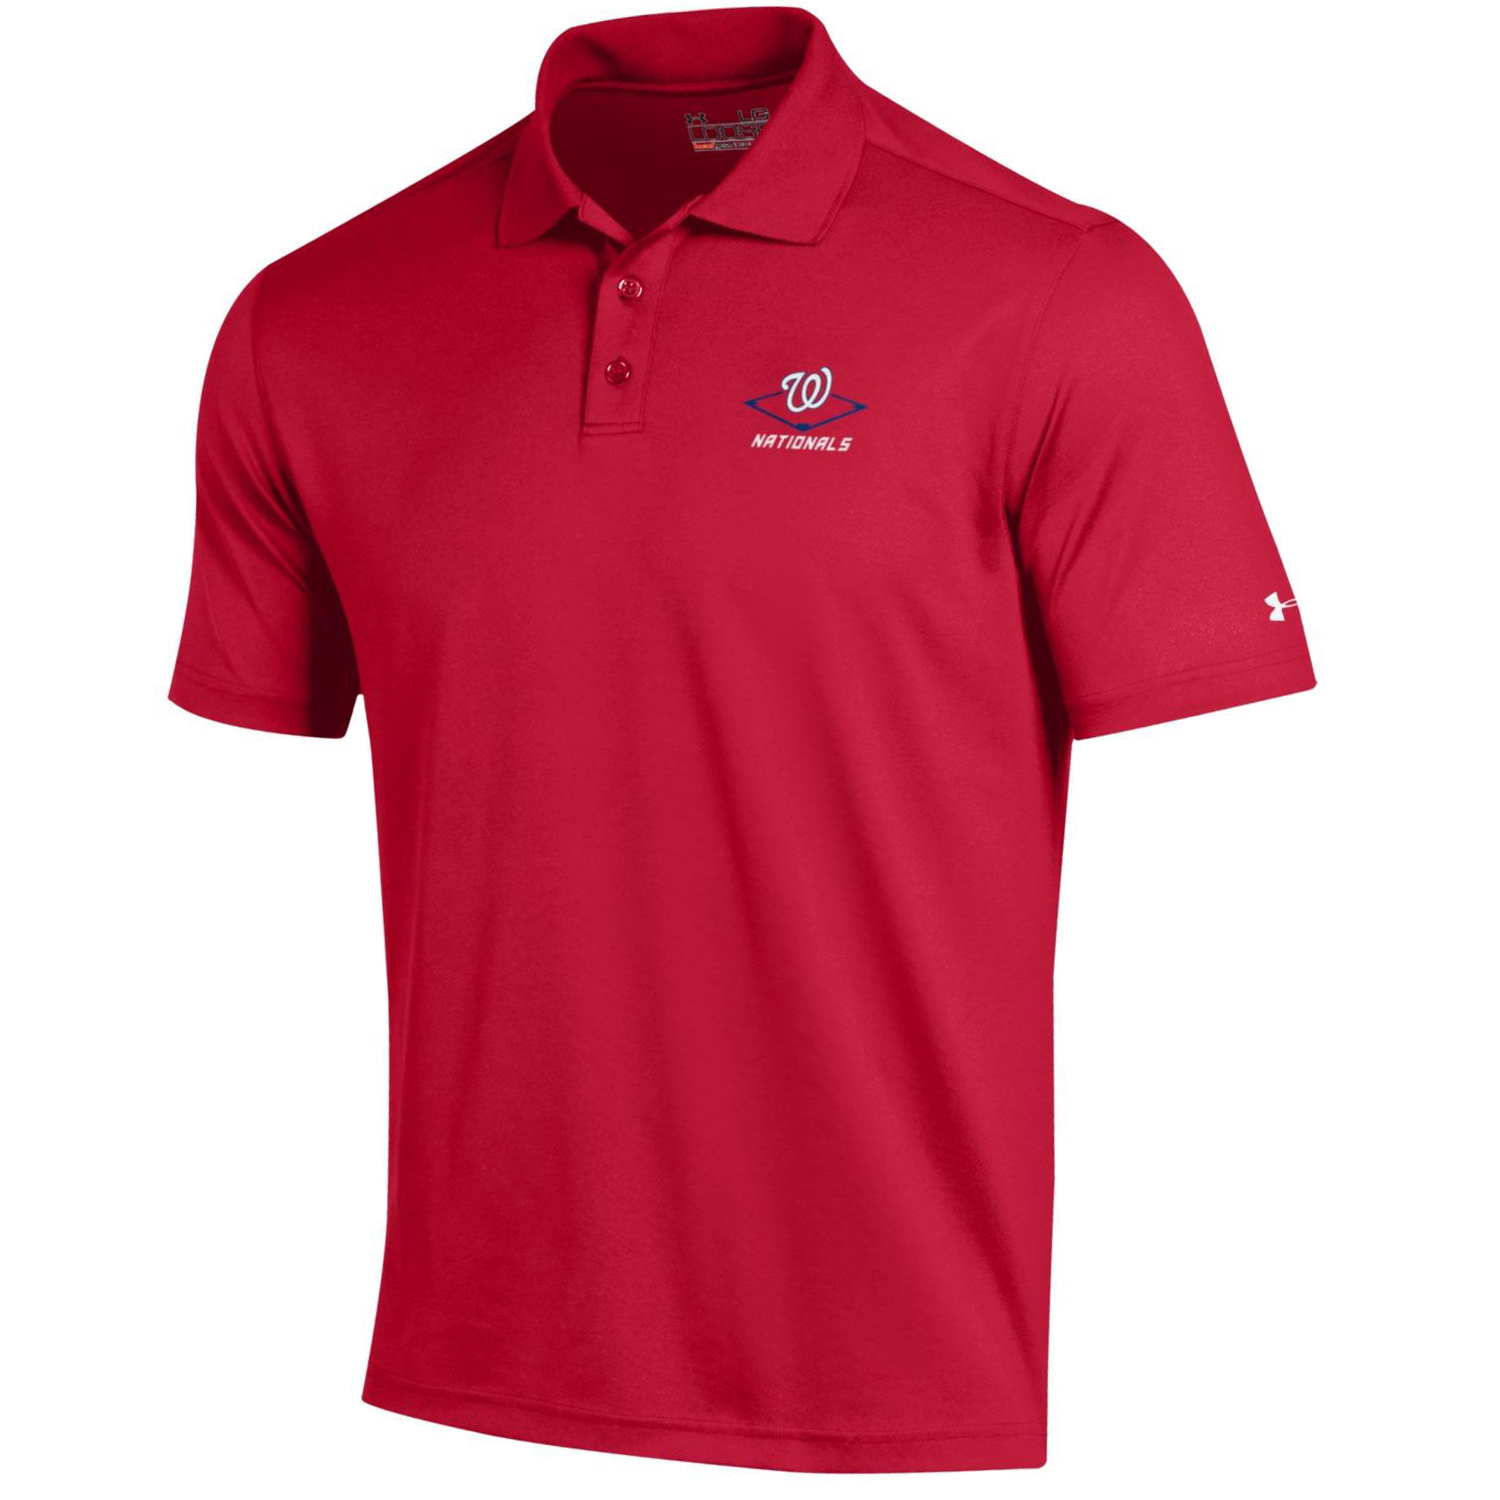 Men's Under Armour Red Washington Nationals MLB Performance Polo